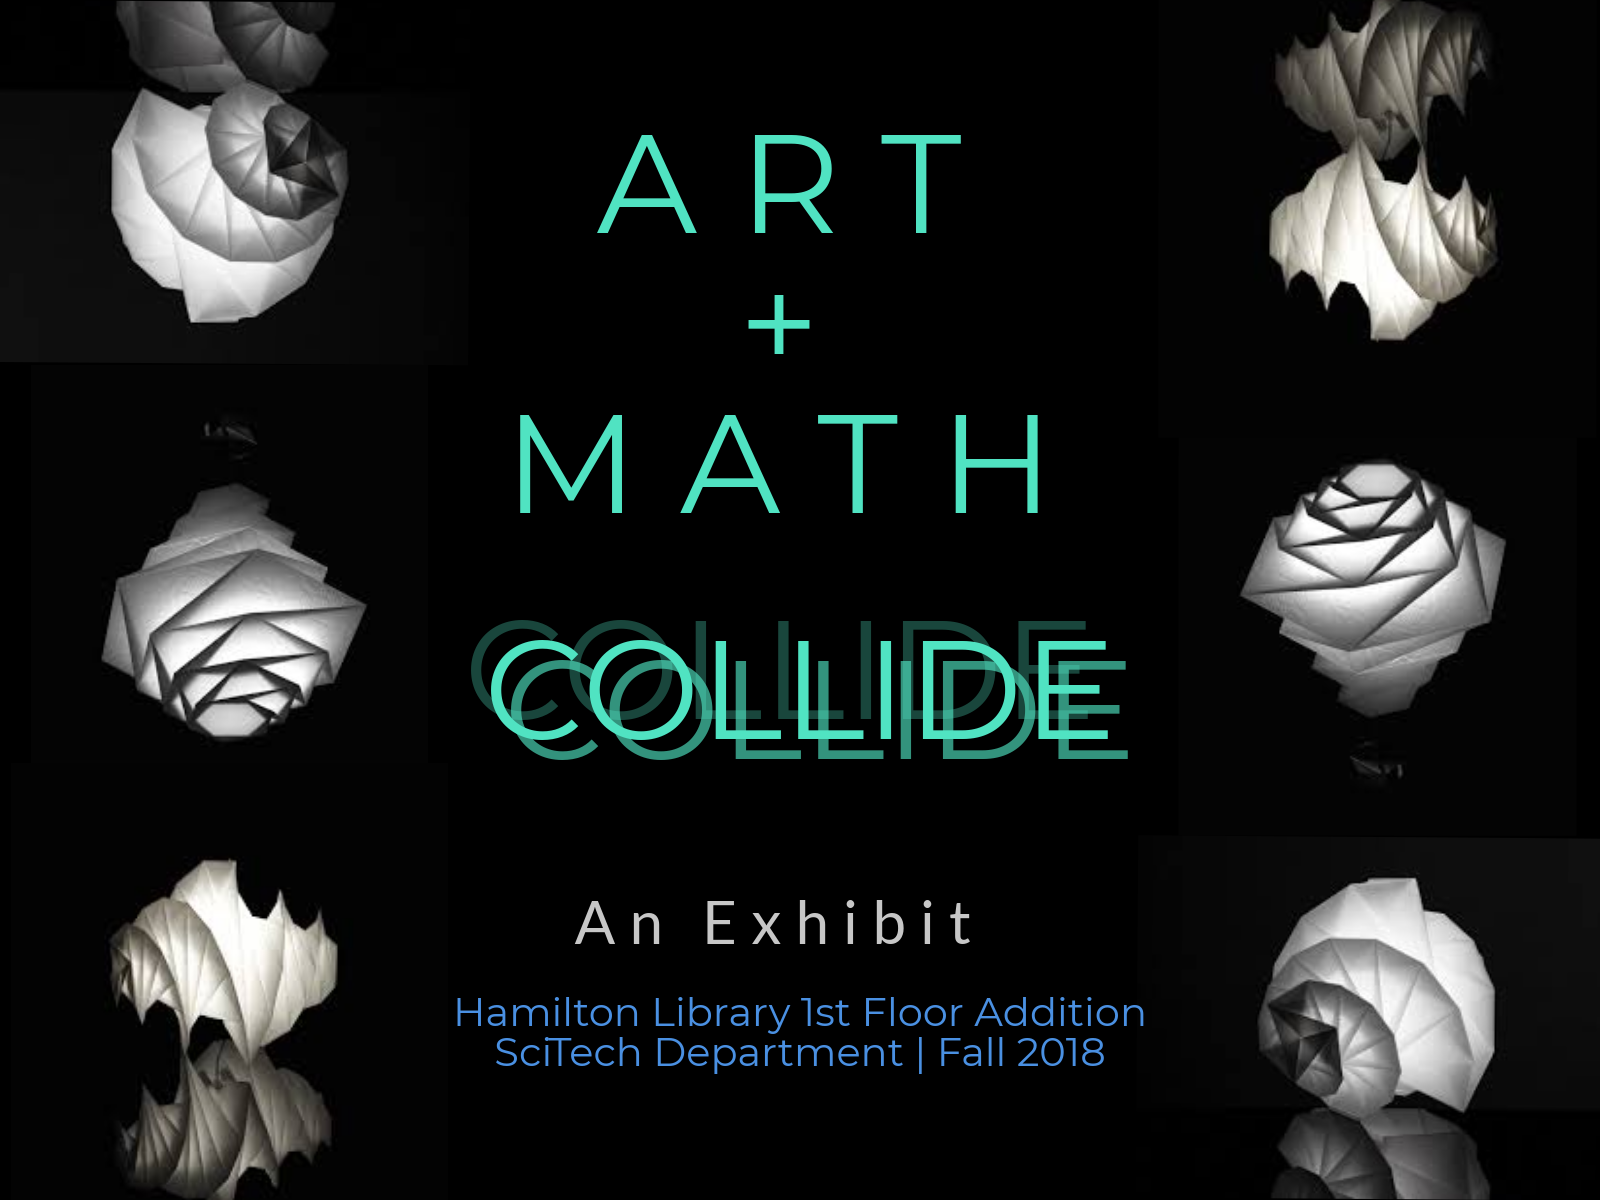 Art + Math Collide. An Exhibit. Hamilton Library 1st Floor Addition SciTech Department, Fall 2018